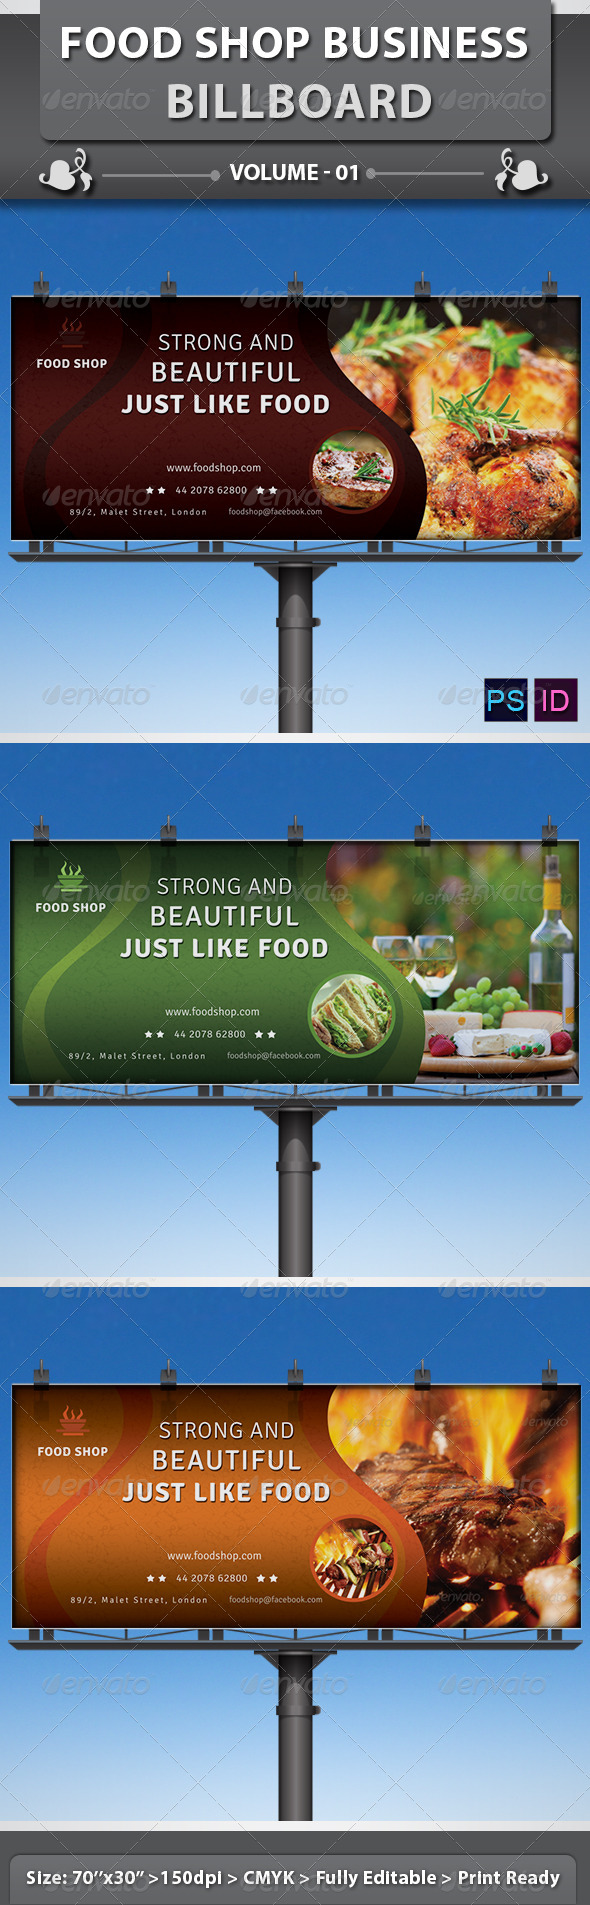 GraphicRiver Food Shop Business Billboard v1 5748957